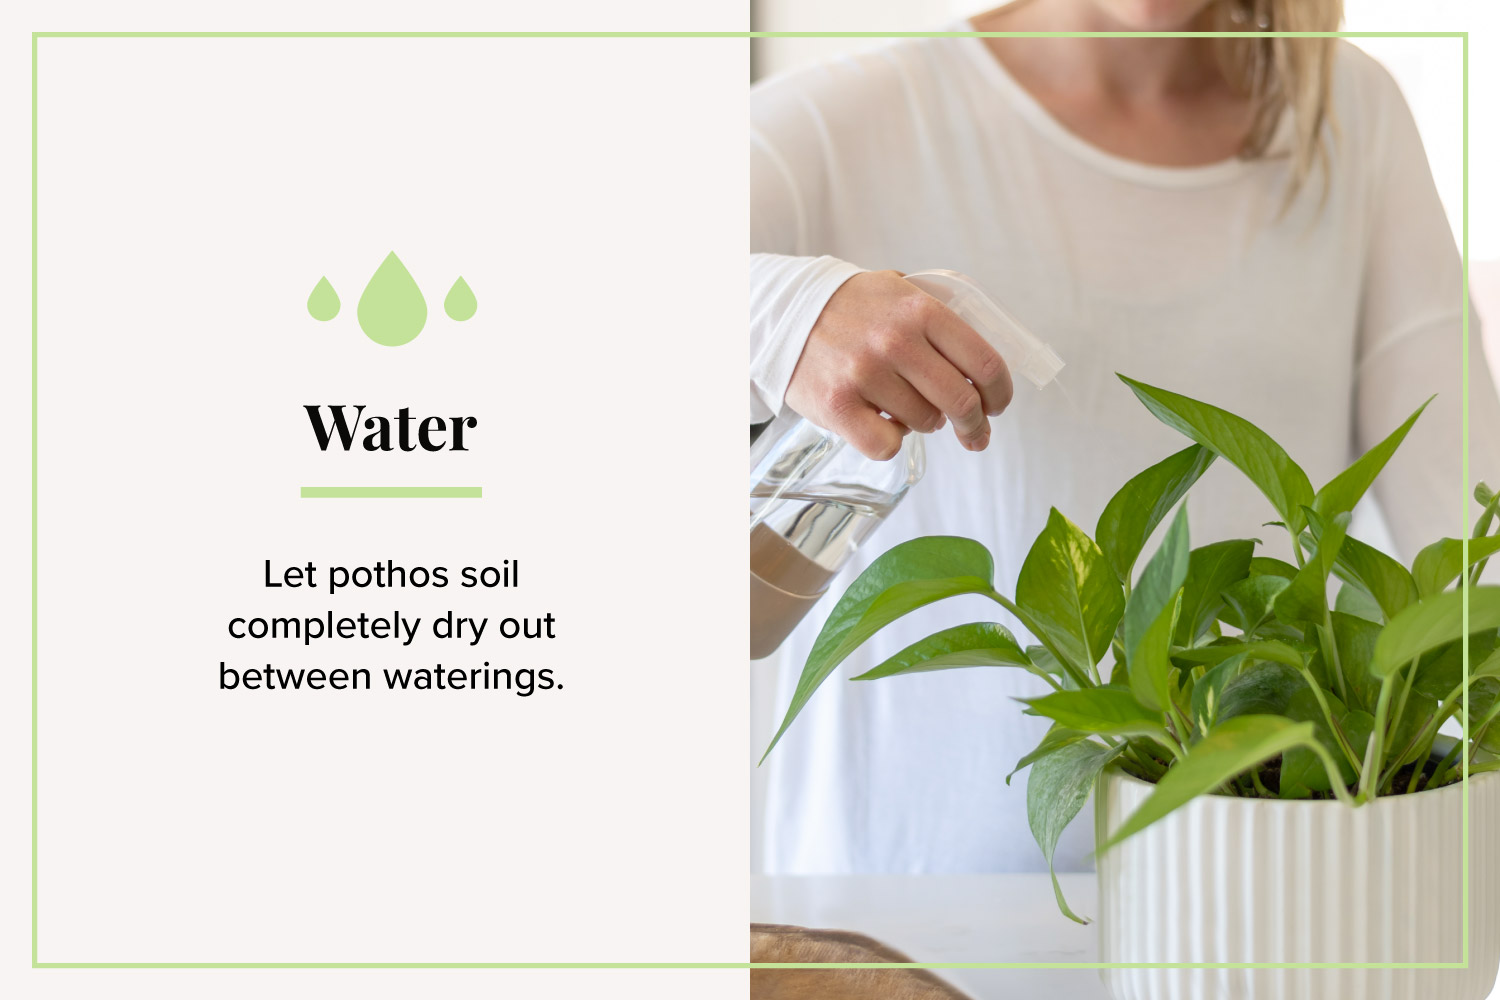 spraying pothos with water